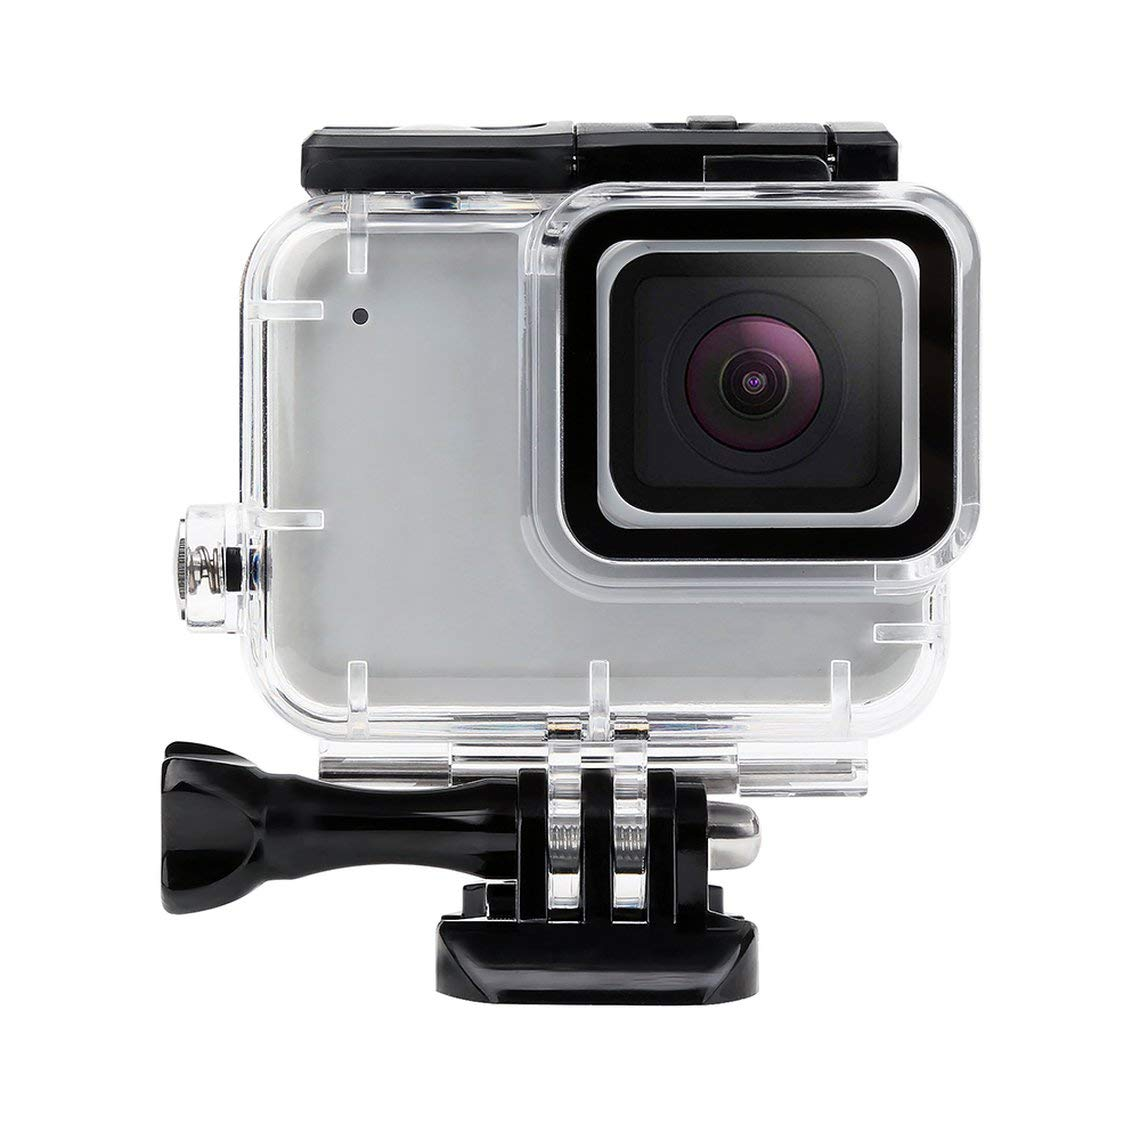 Zinniaya Acrylic PC Glass Diving Waterproof Housing Case For GoPro Hero 7 Silver Camera Accessories 30M